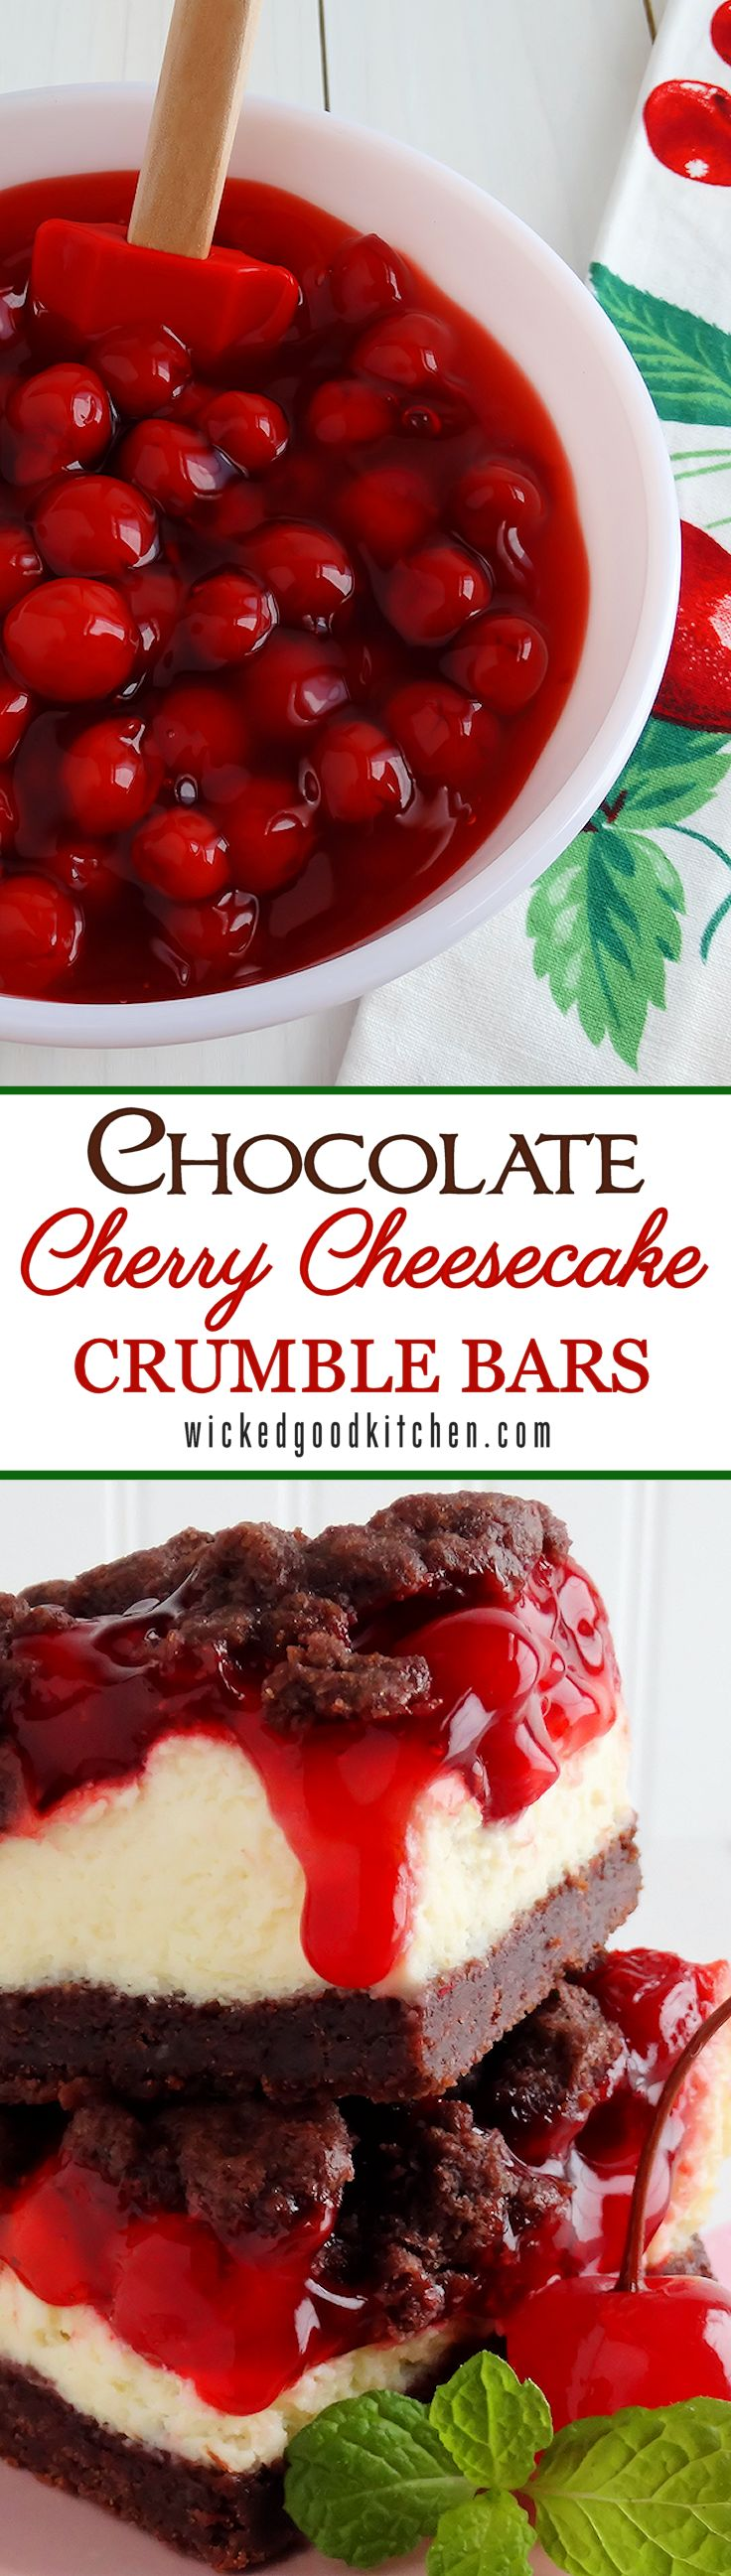 Chocolate Cherry Cheesecake Crumble Bars by WickedGoodKitchen.com ~ A buttery rich chocolate crumble pastry that tastes like the most scrumptious chocolate shortbread cookies, a cheesecake filling that rivals any New York Style Cheesecake and tart cherry pie filling makes one of the most irresistible crumble bars ever! Recipe includes gluten free option. | dessert recipe